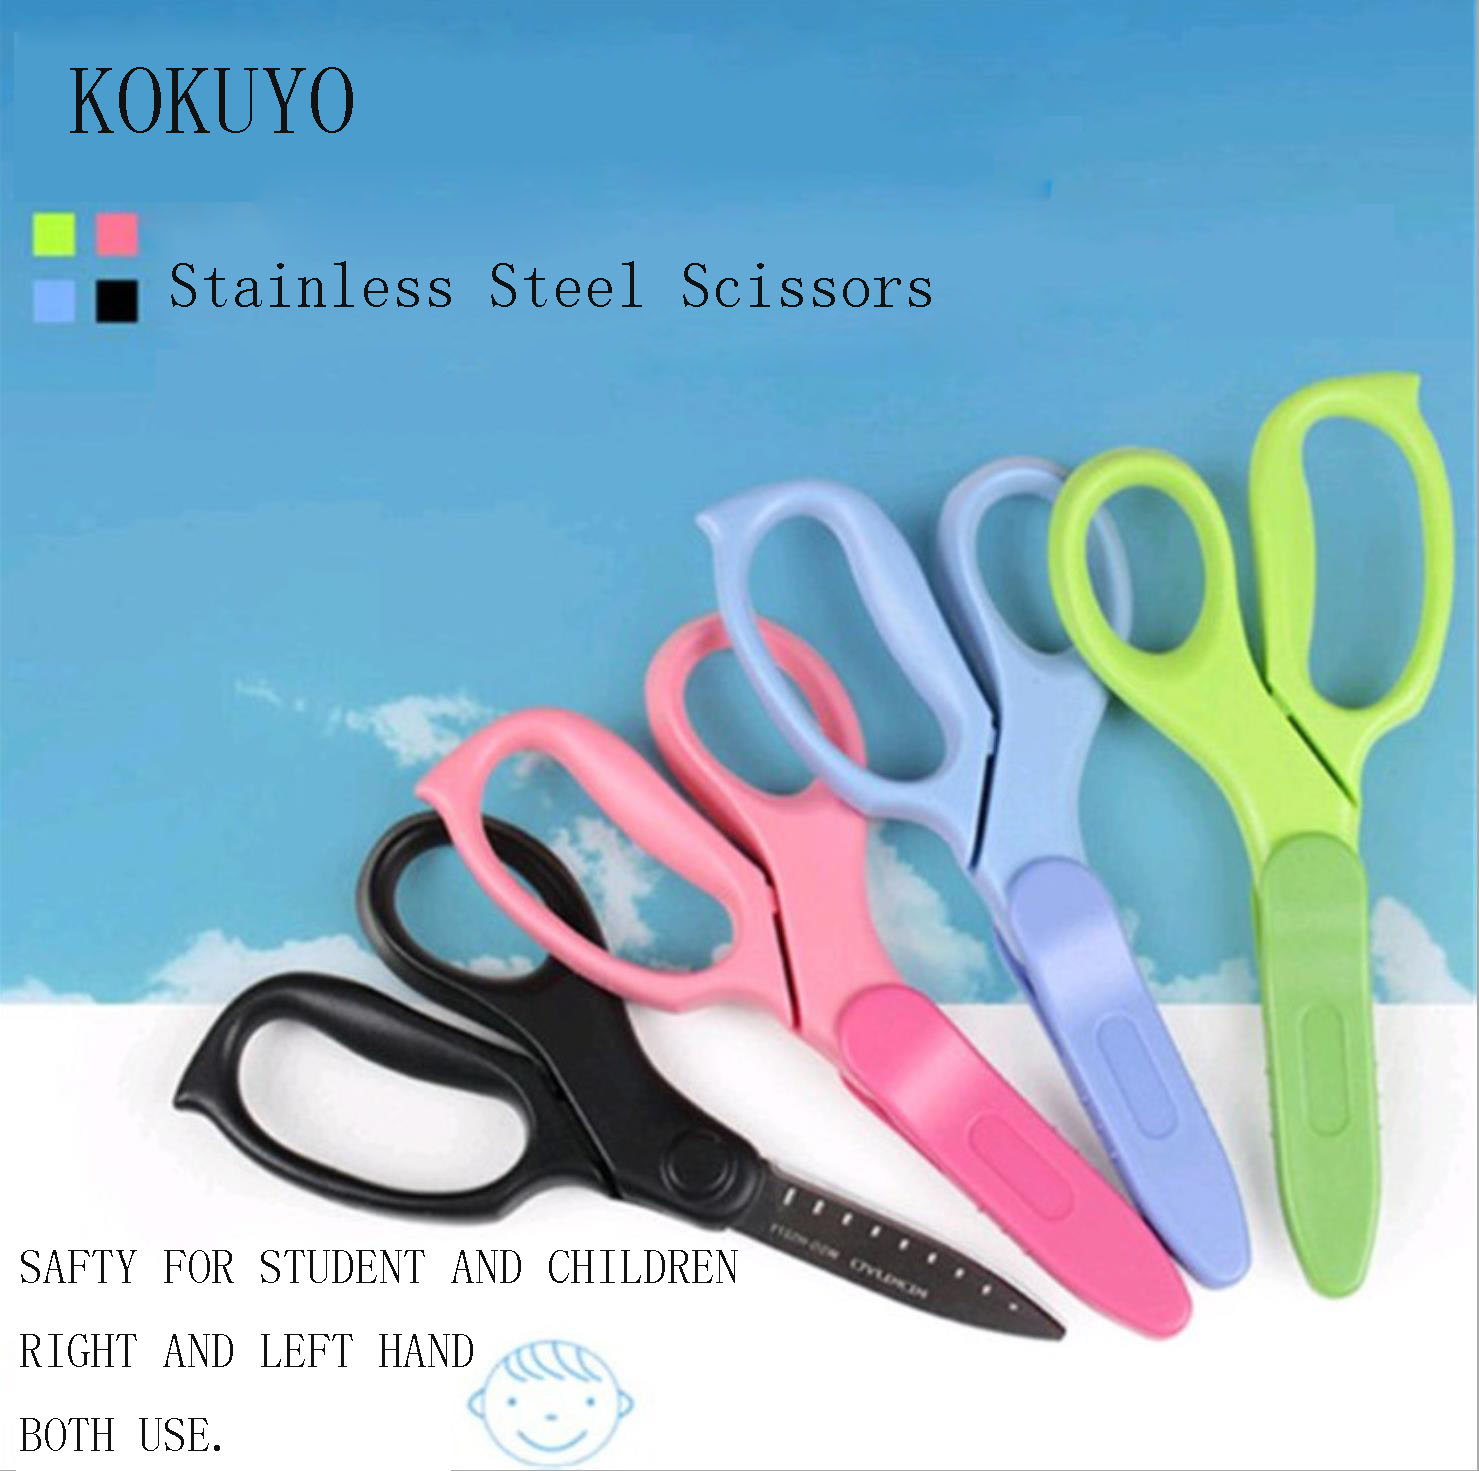 TUNACOCO JAPAN KOKUYO Stainless Steel Scissors Art Scissors Hand Paper Cutting Stationery Children Gift Student Office Qt1710091